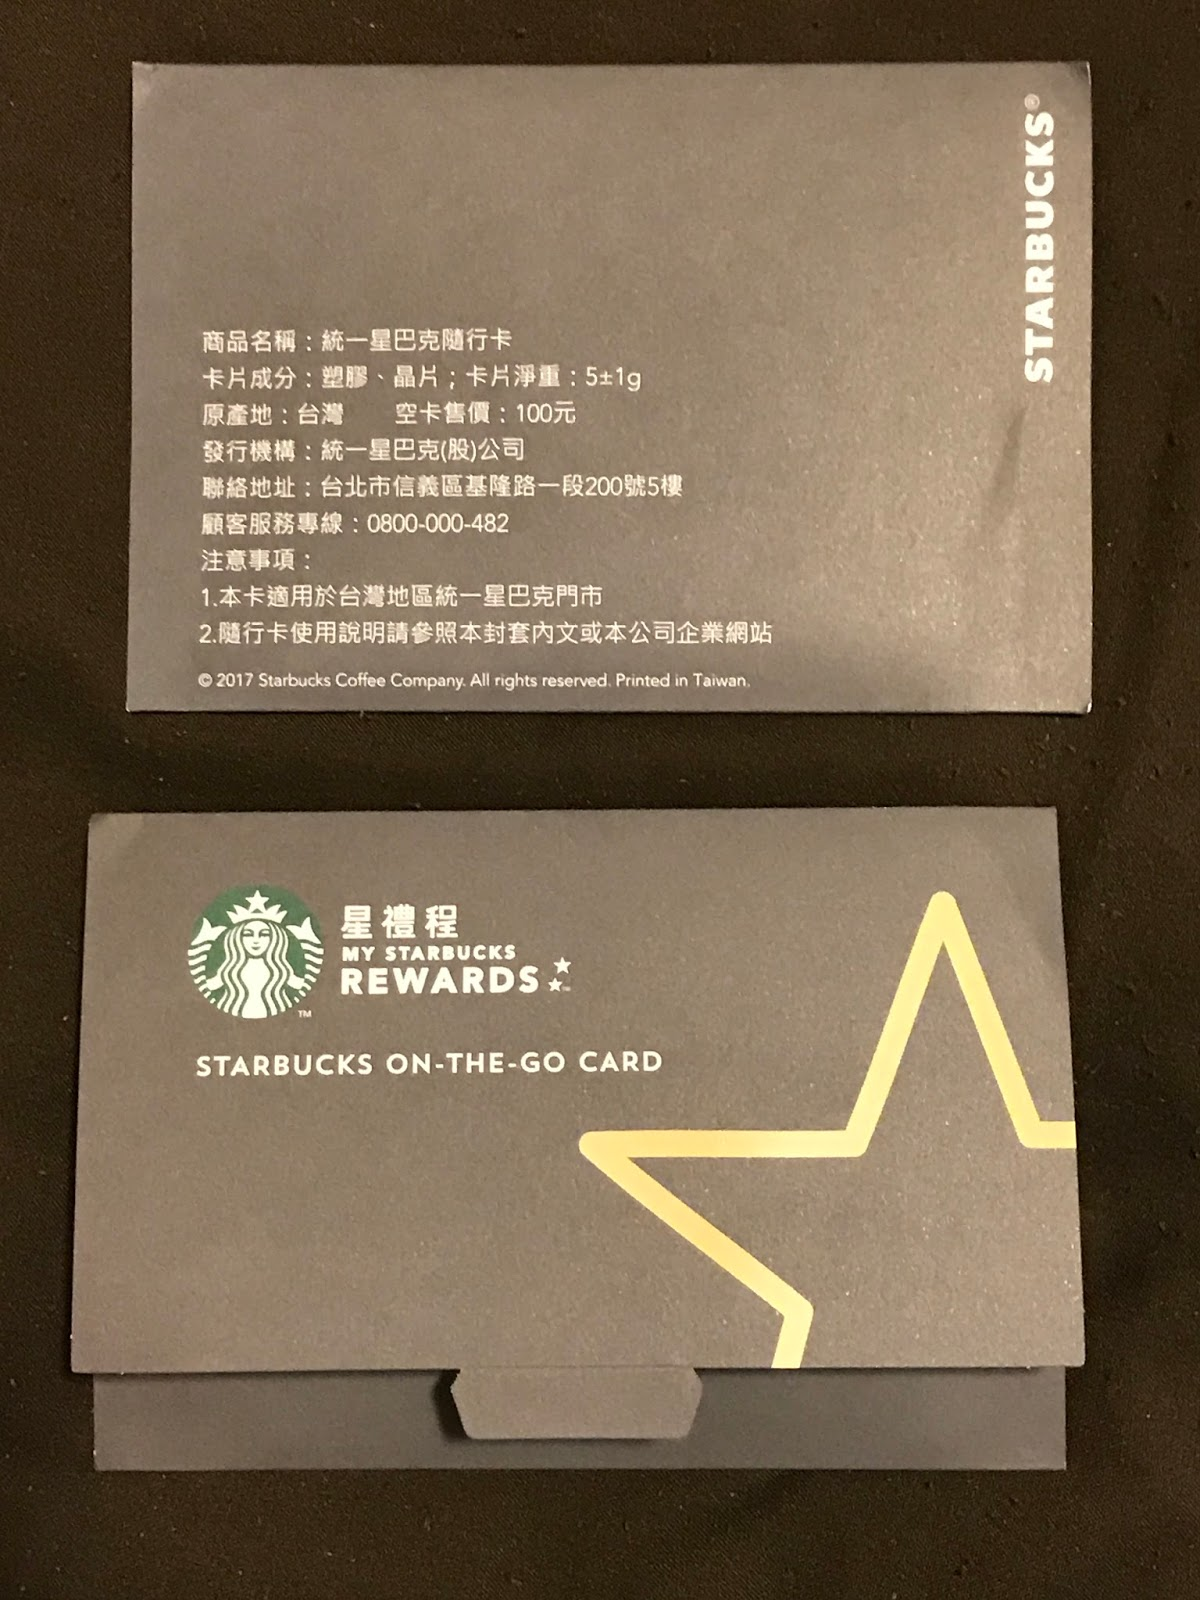 Starbucks card collection sleeves envelopes holder misc posted by starbucks cards at 928 pm colourmoves